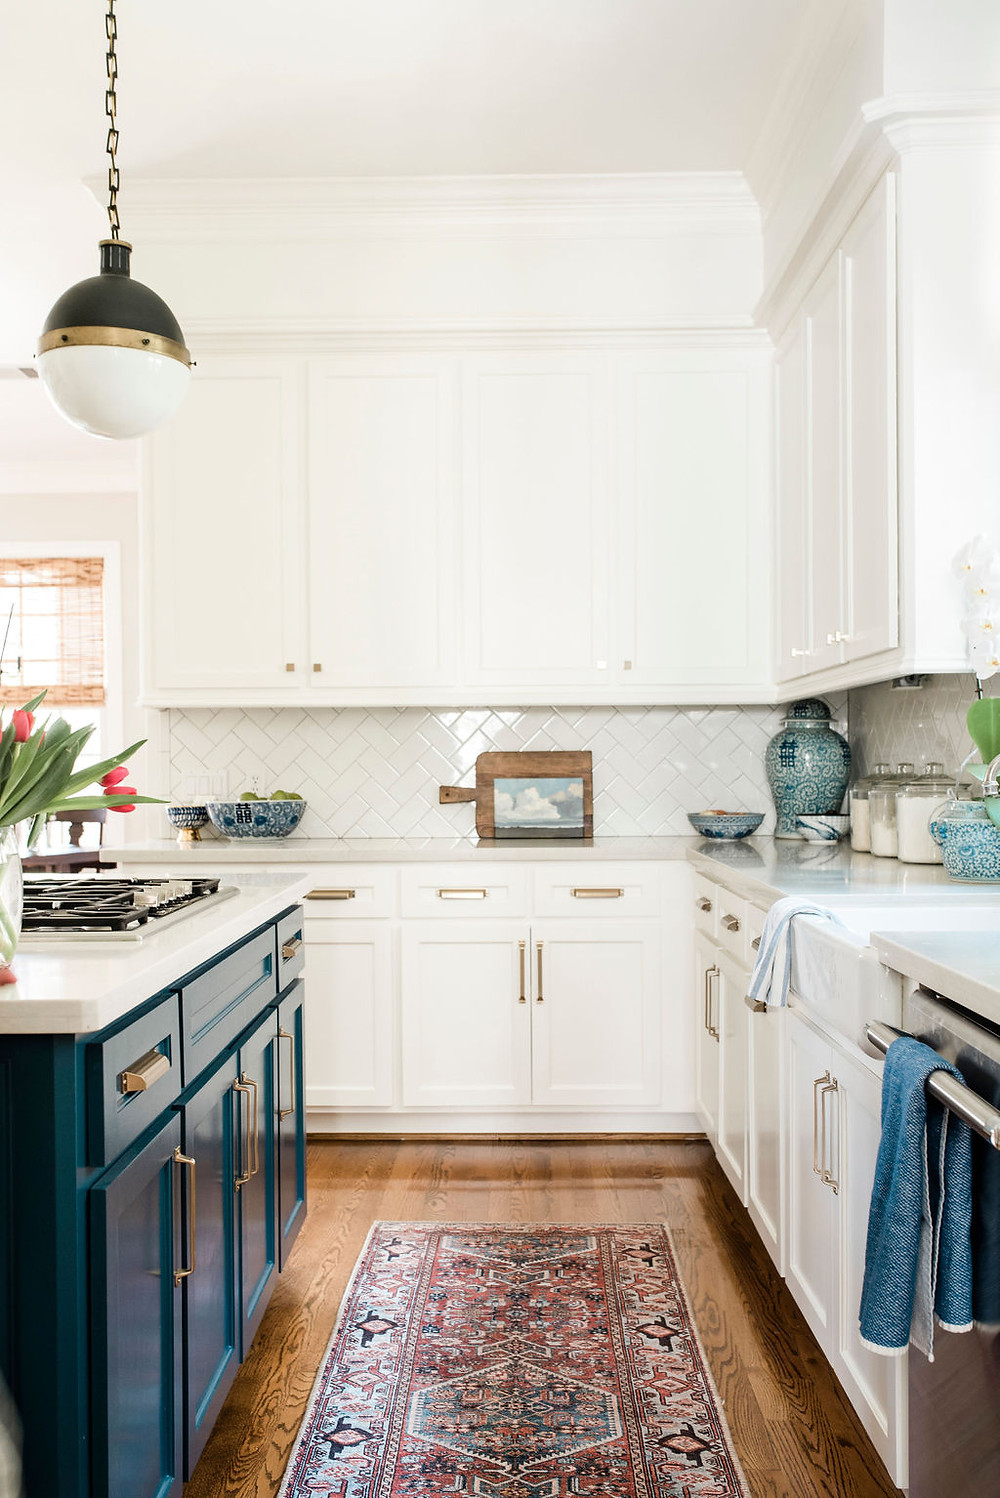 Modern traditional kitchen by Houston interior design firm Nancy Lane Interiors